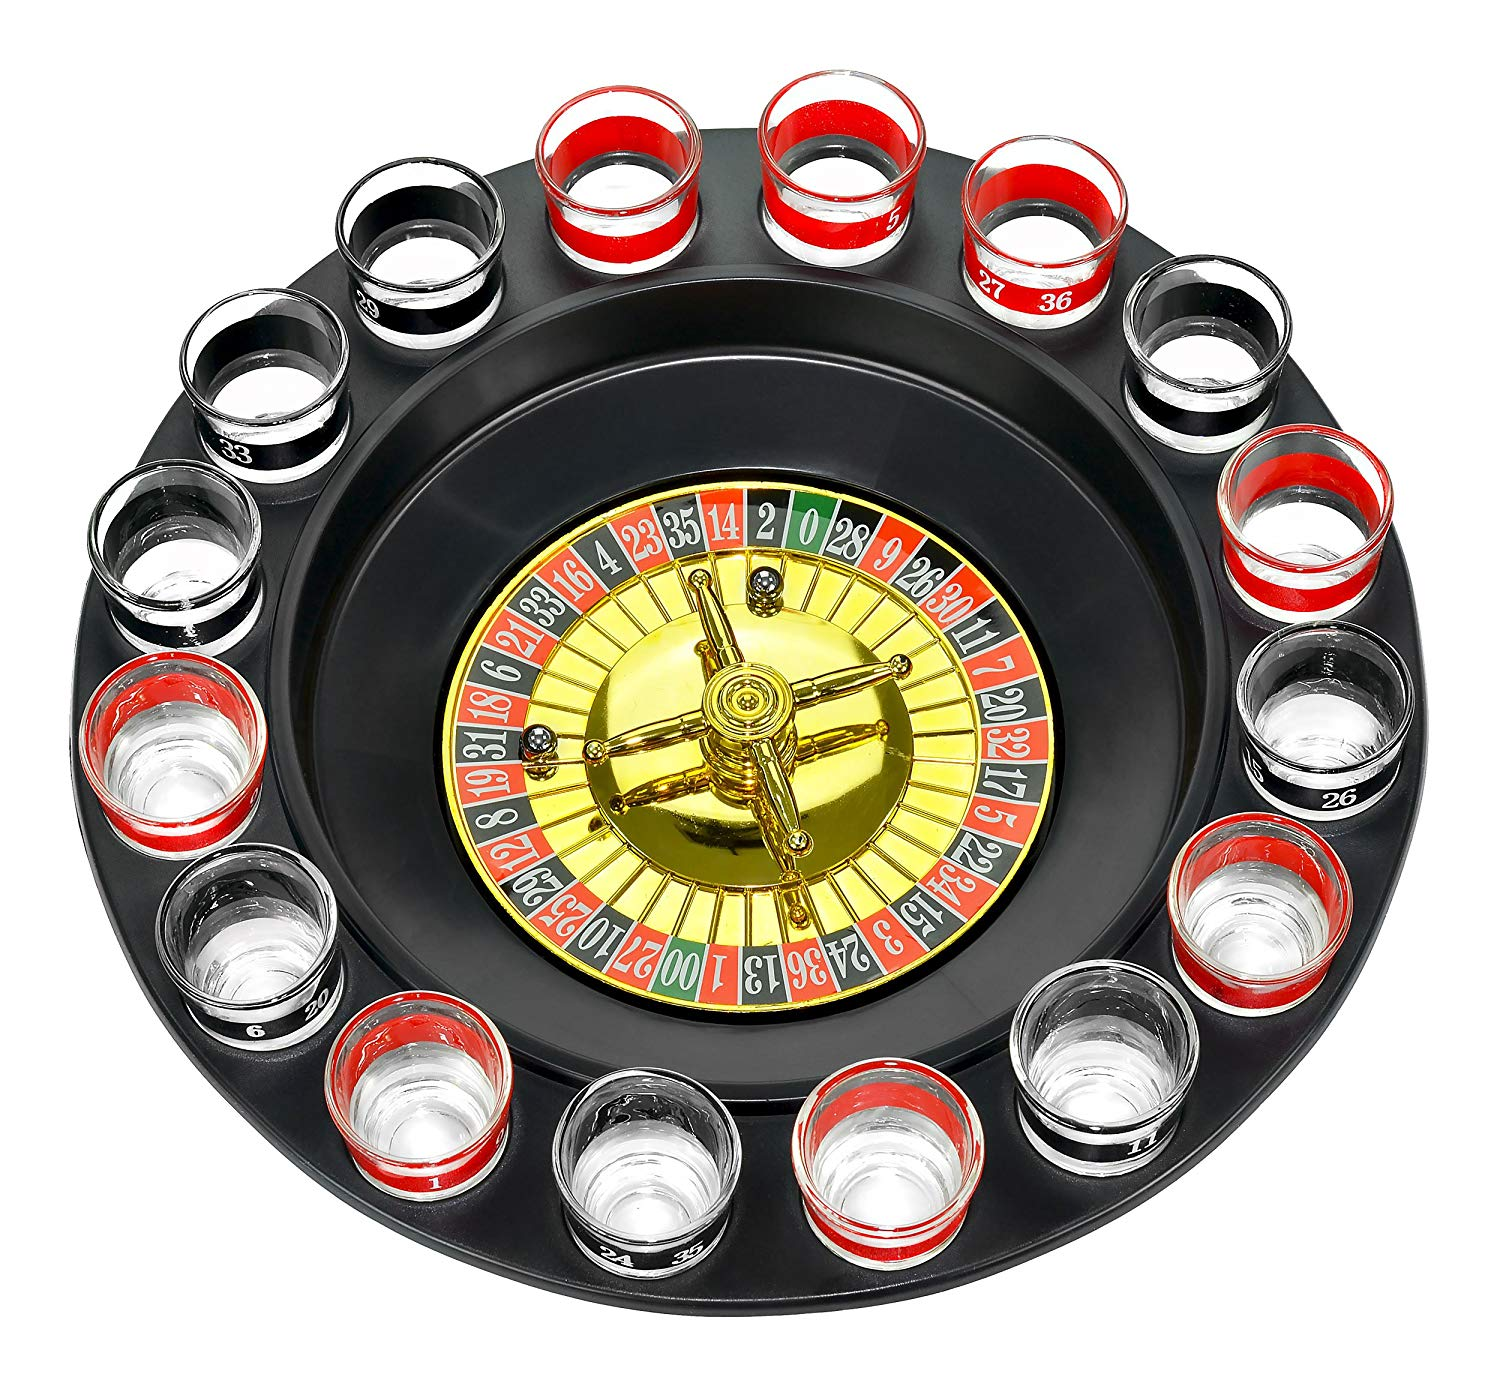 Drinking Roulette incl. 16 shot glasses for £6.9 at Amazon